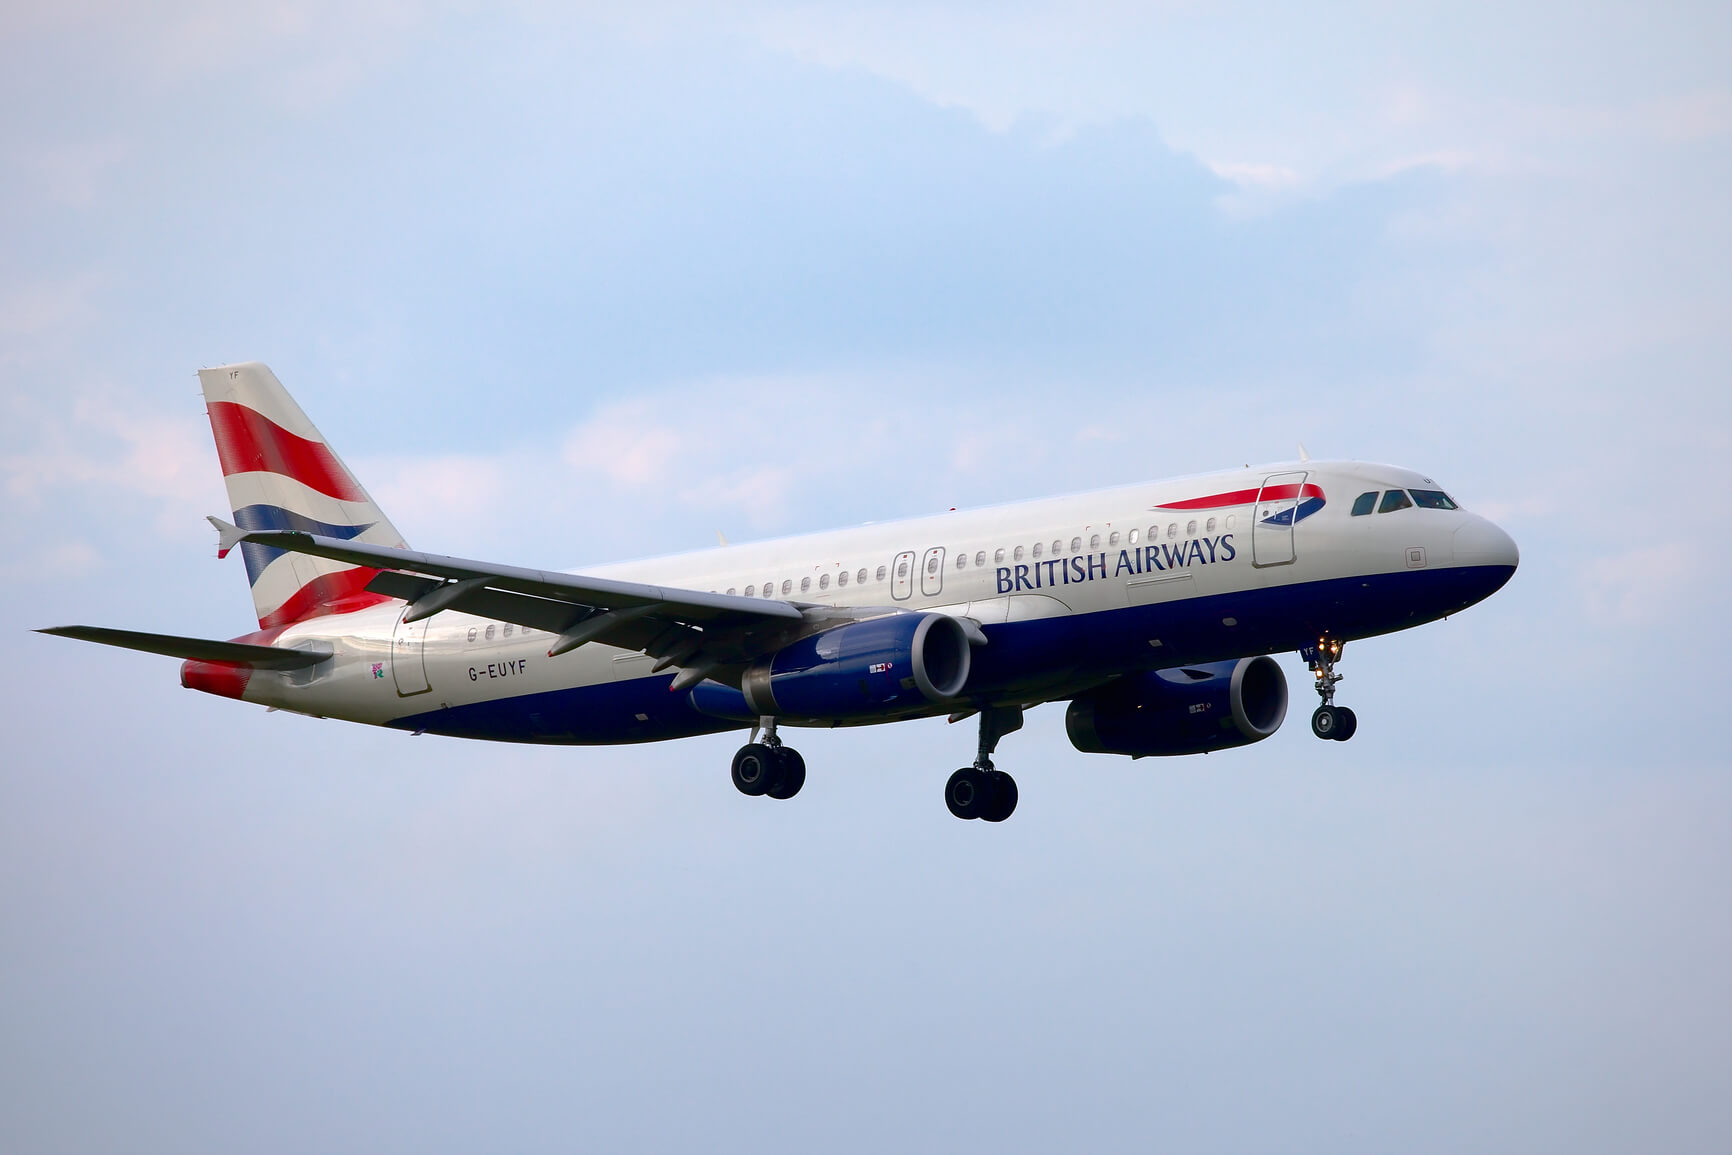 PROMO: 100 seats for £100 each-way with British Airways